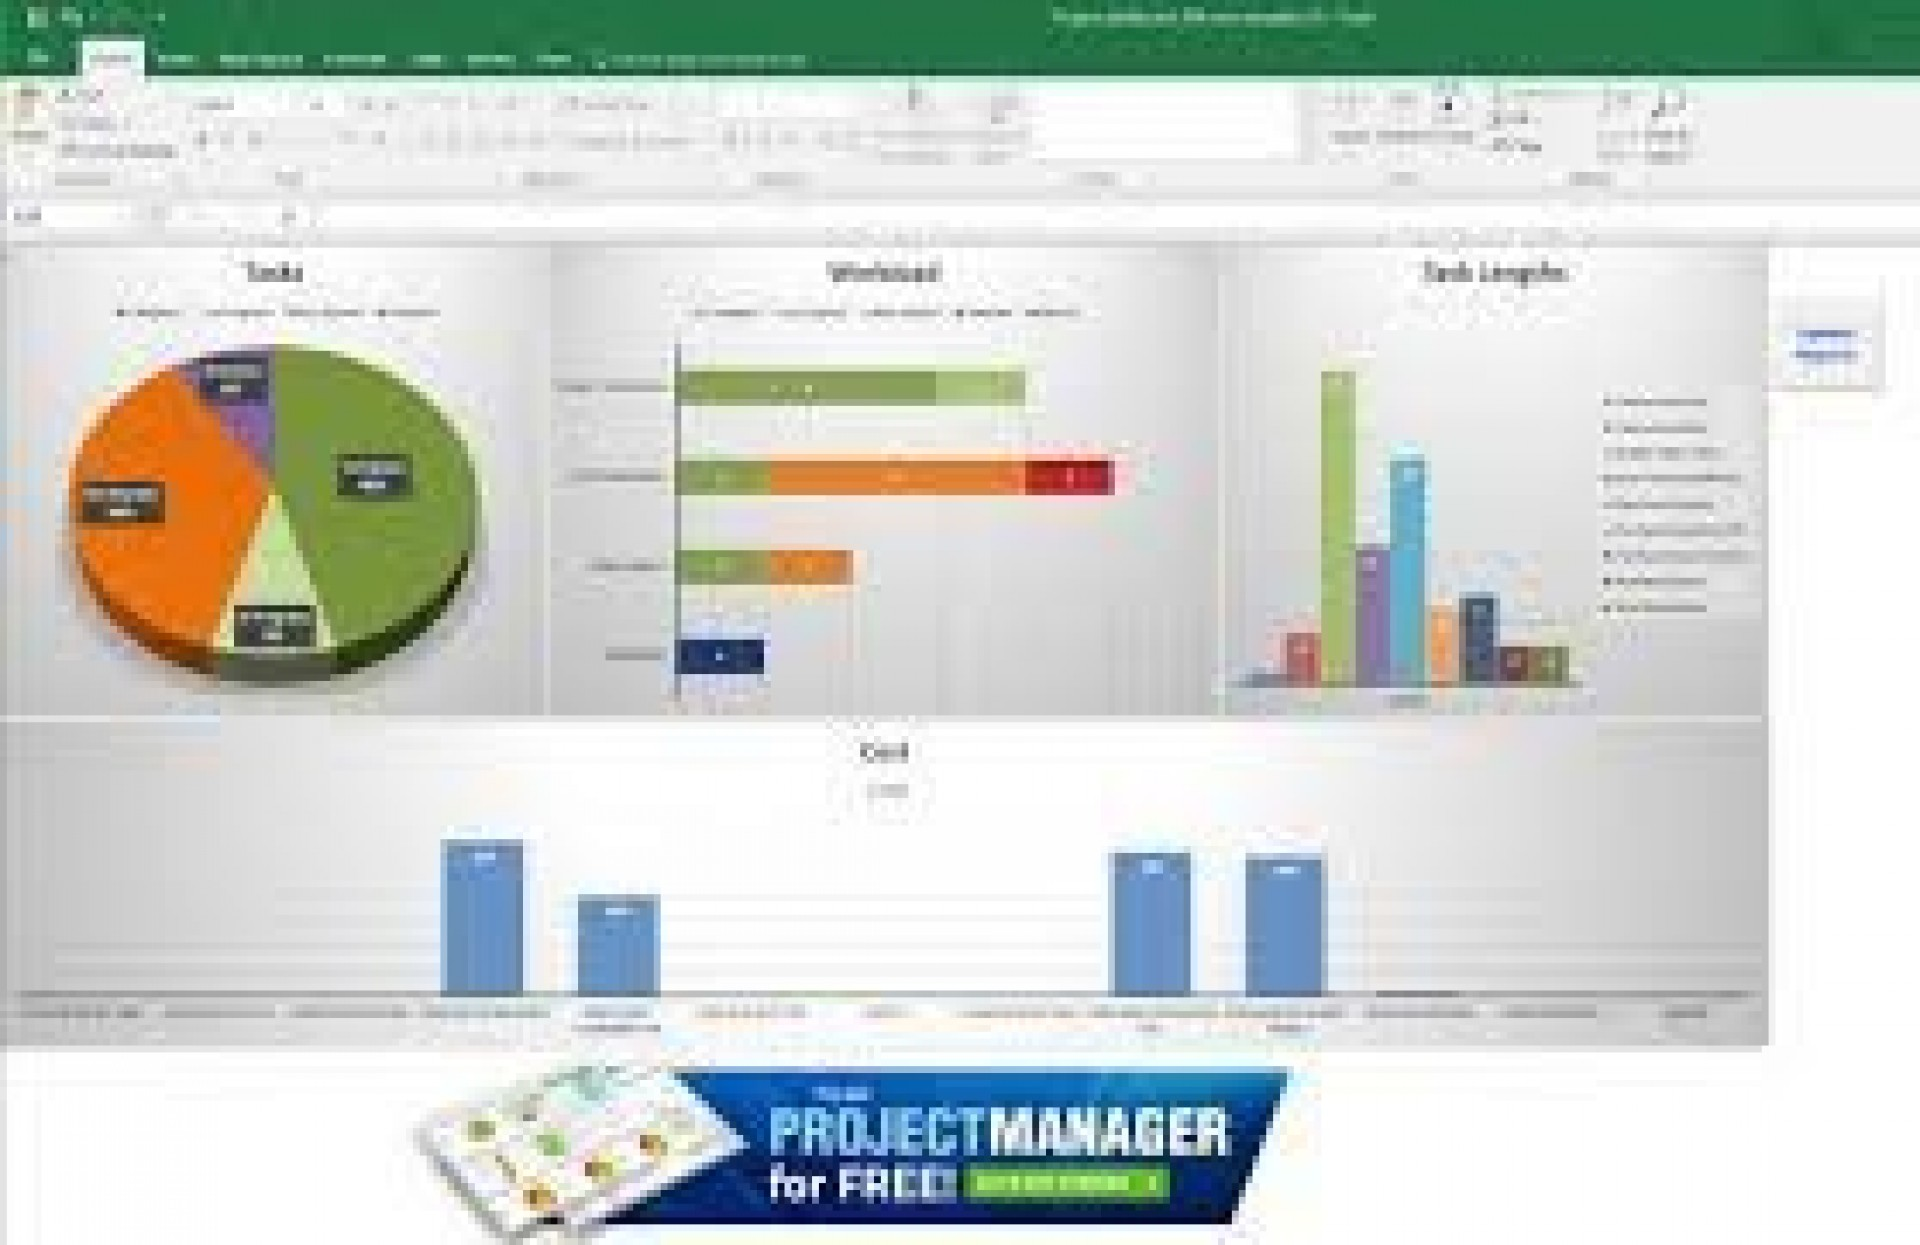 002 Simple Project Management Dashboard Excel Template Free Highest Clarity  Multiple1920